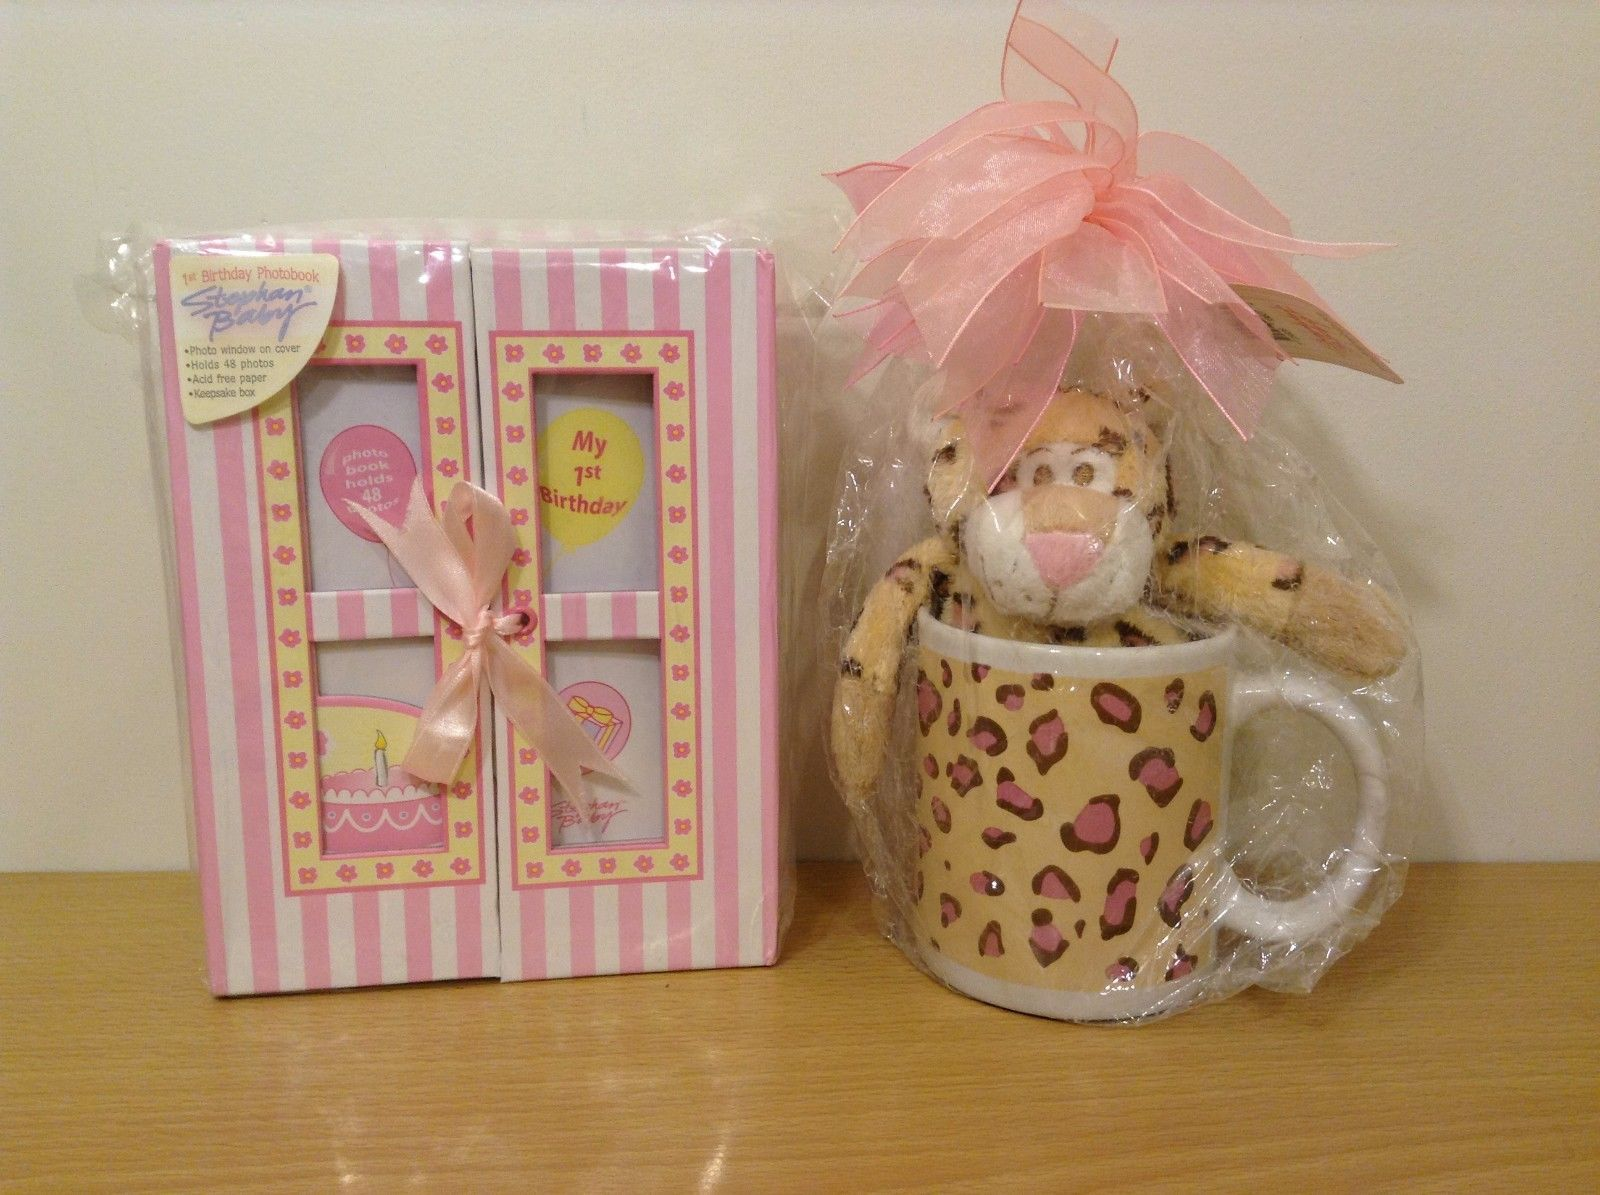 Stephan Baby 1st Birthday Gift Set For Baby Girl And Mom Mug and Plush Toy NWT